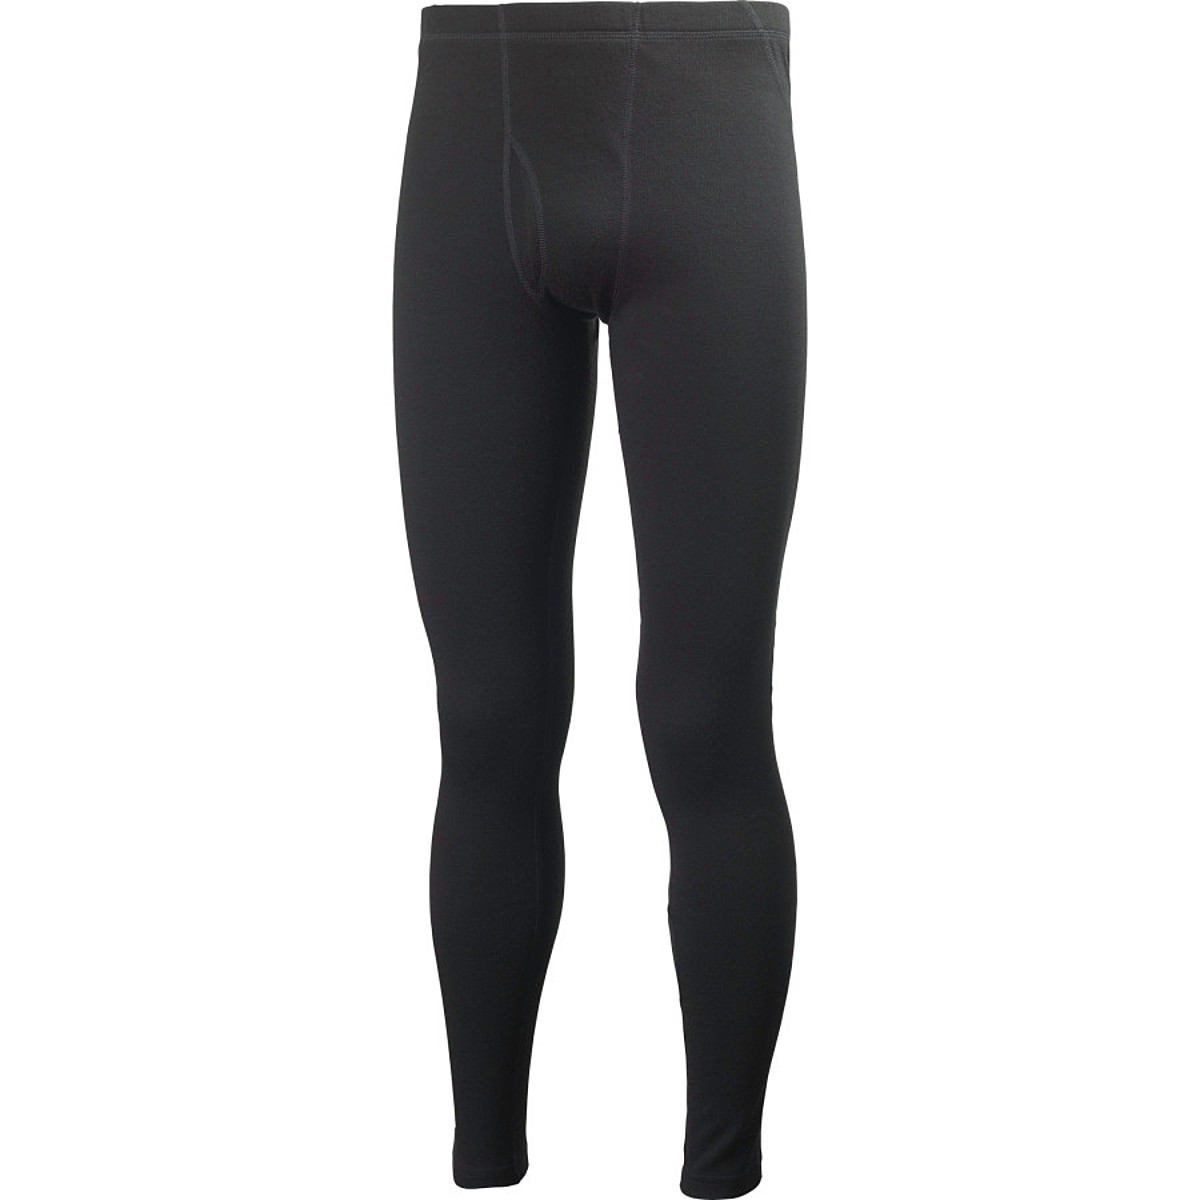 photo: Helly Hansen Men's HH Warm Pant base layer bottom